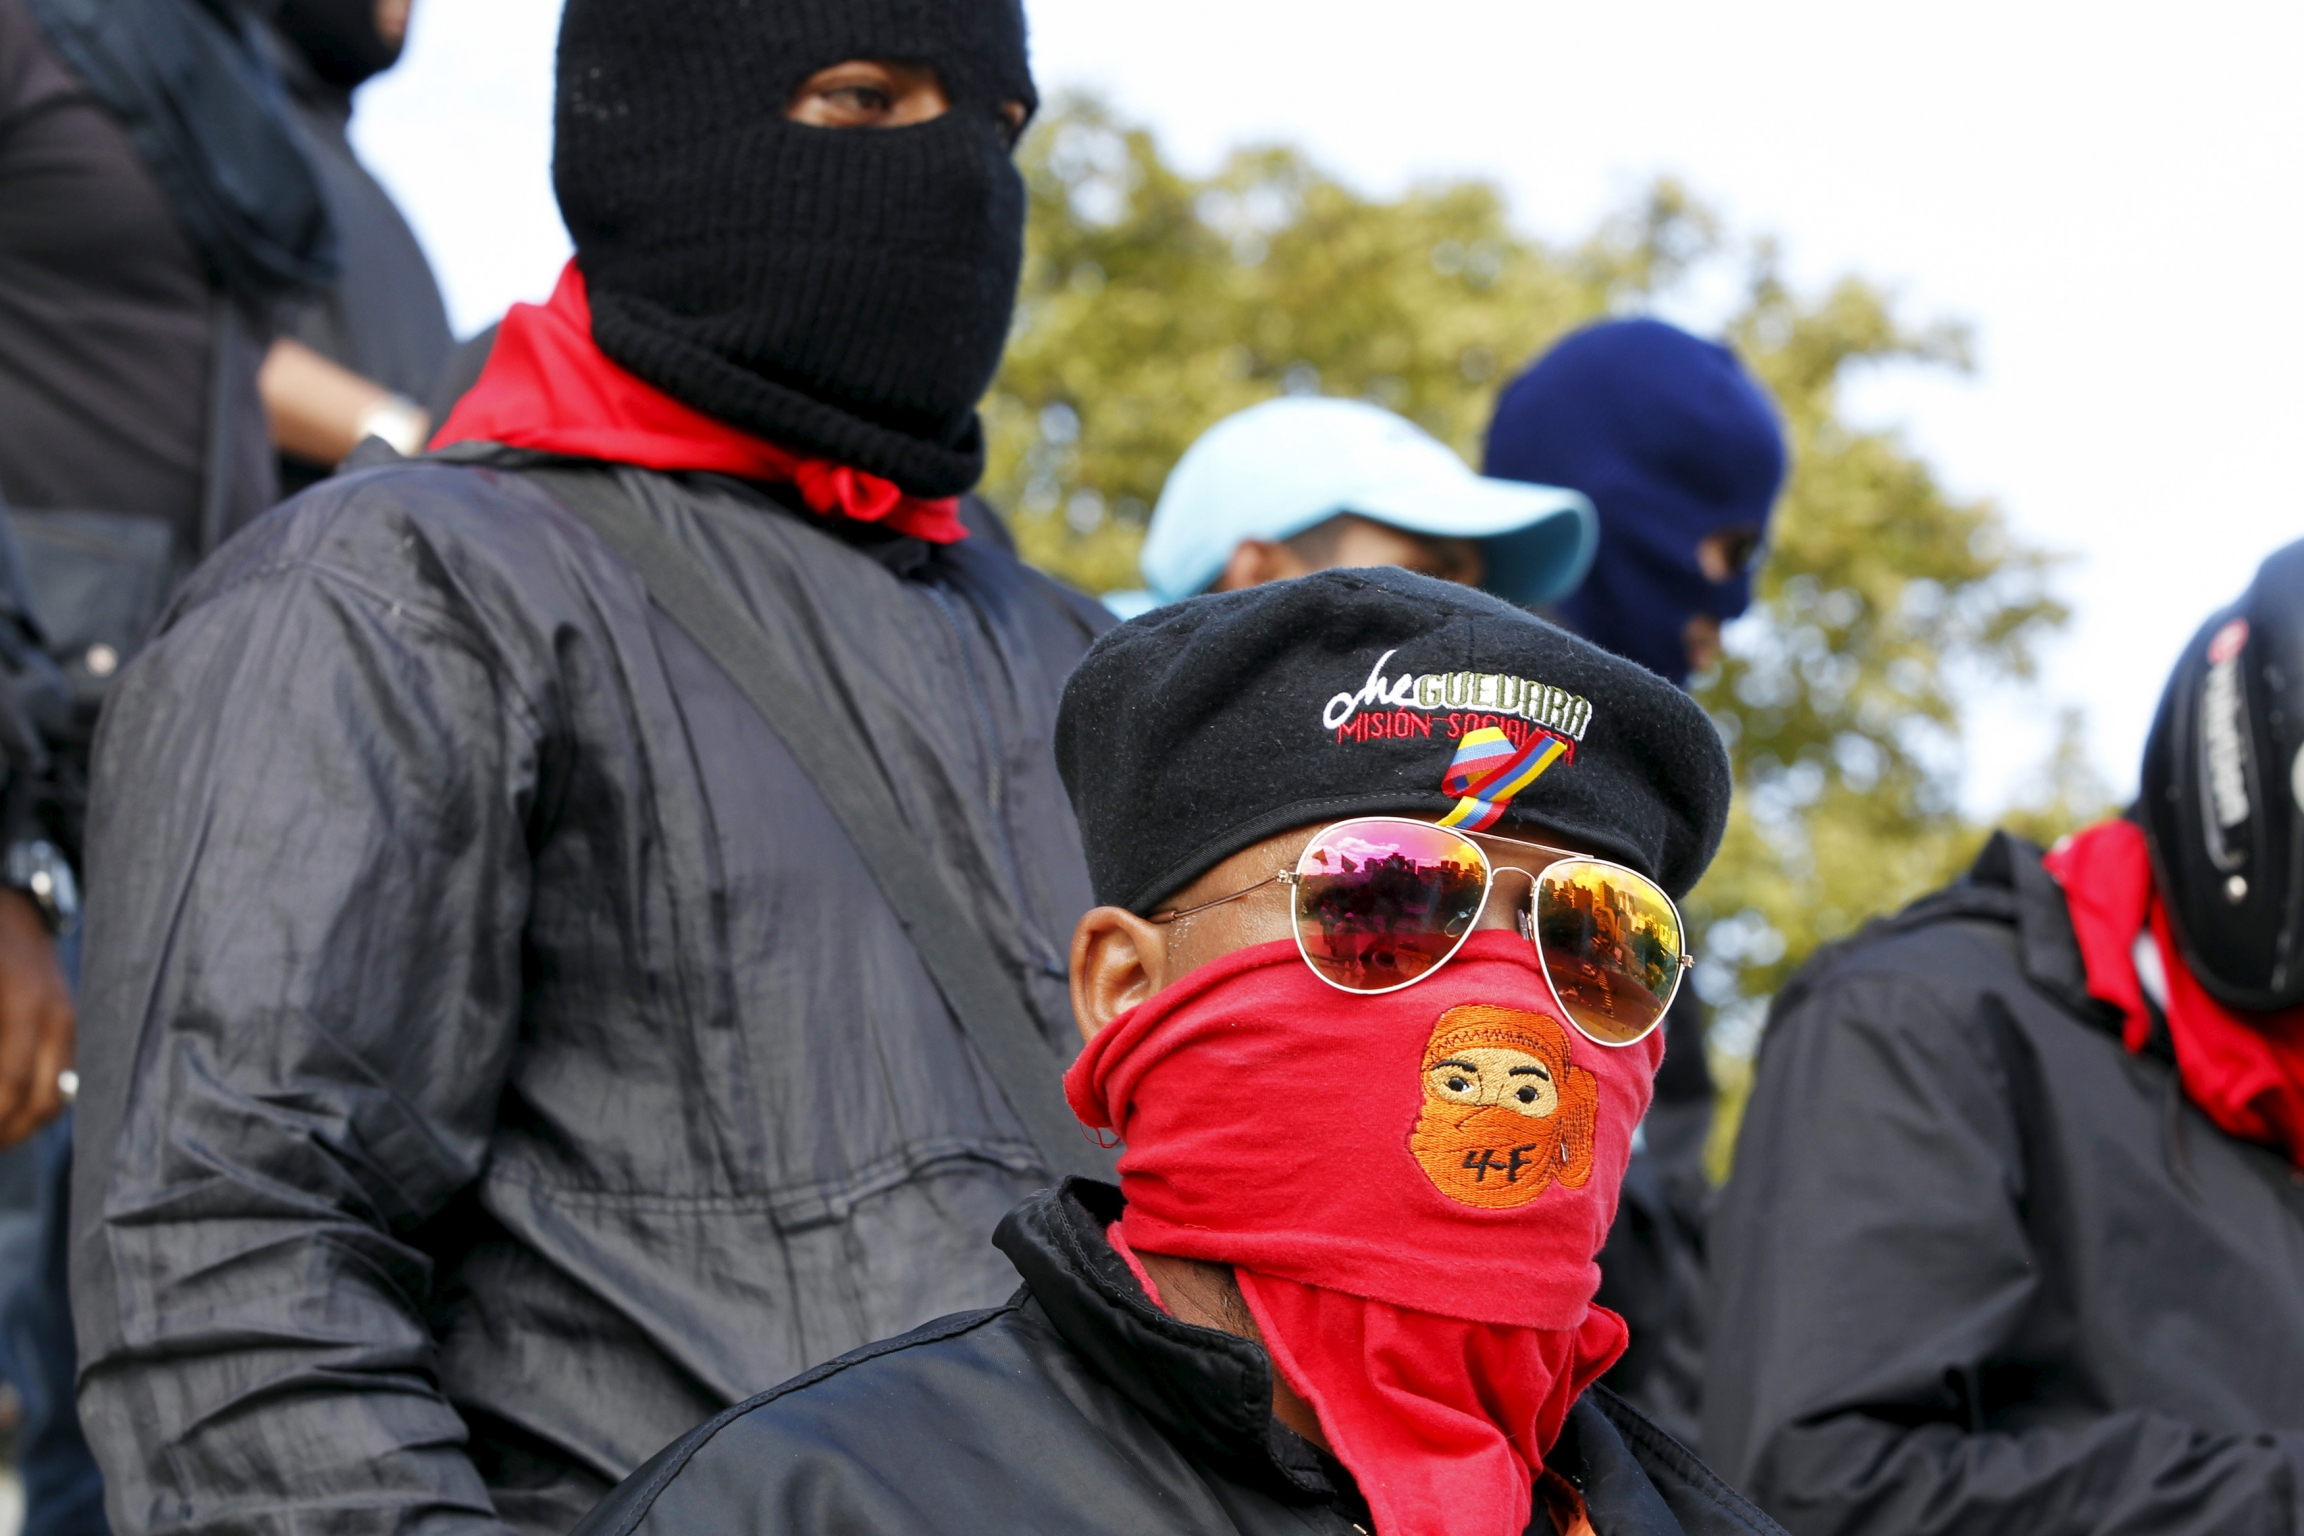 A man wears a red mask over his mouth and sunglasses